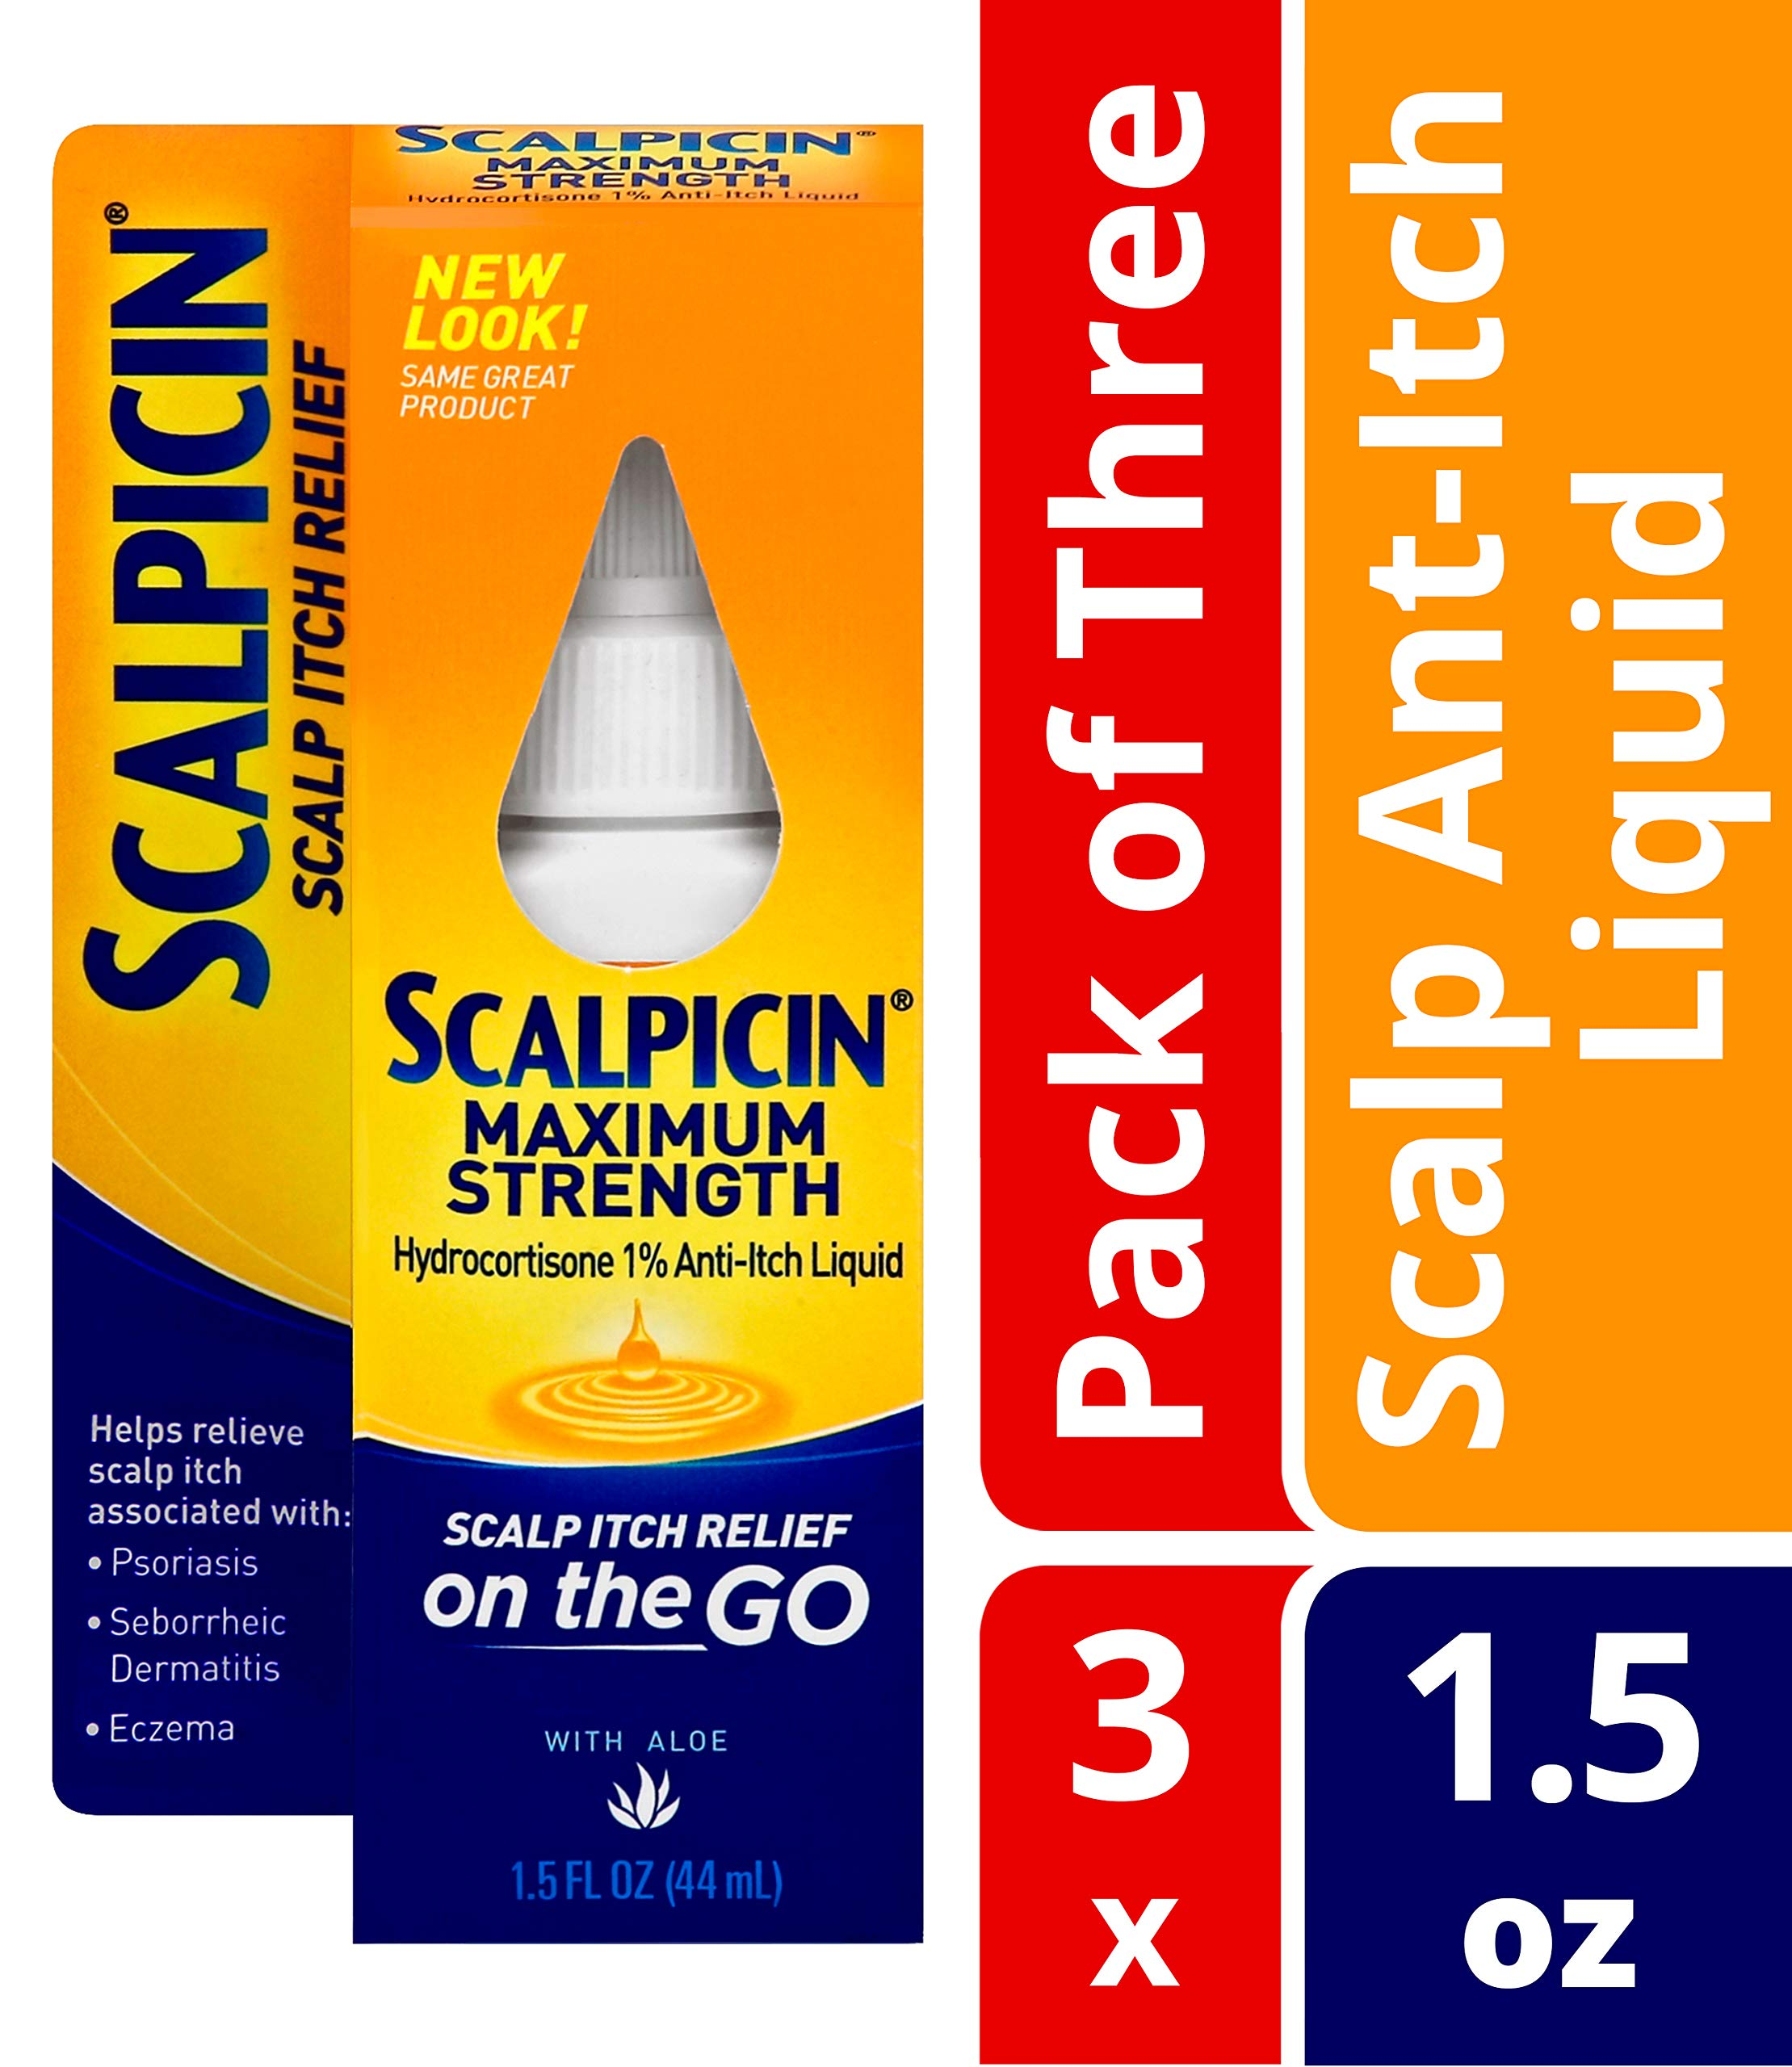 Scalpicin Maximum Strength Scalp Itch Liquid Treatment- For Relief From Itchy Scalp, Psoriasis, Eczema & Seborrheic Dermatitis With Hydrocortisone & Aloe Vera, 1.5 oz. (Pack of 3) by Scalpicin